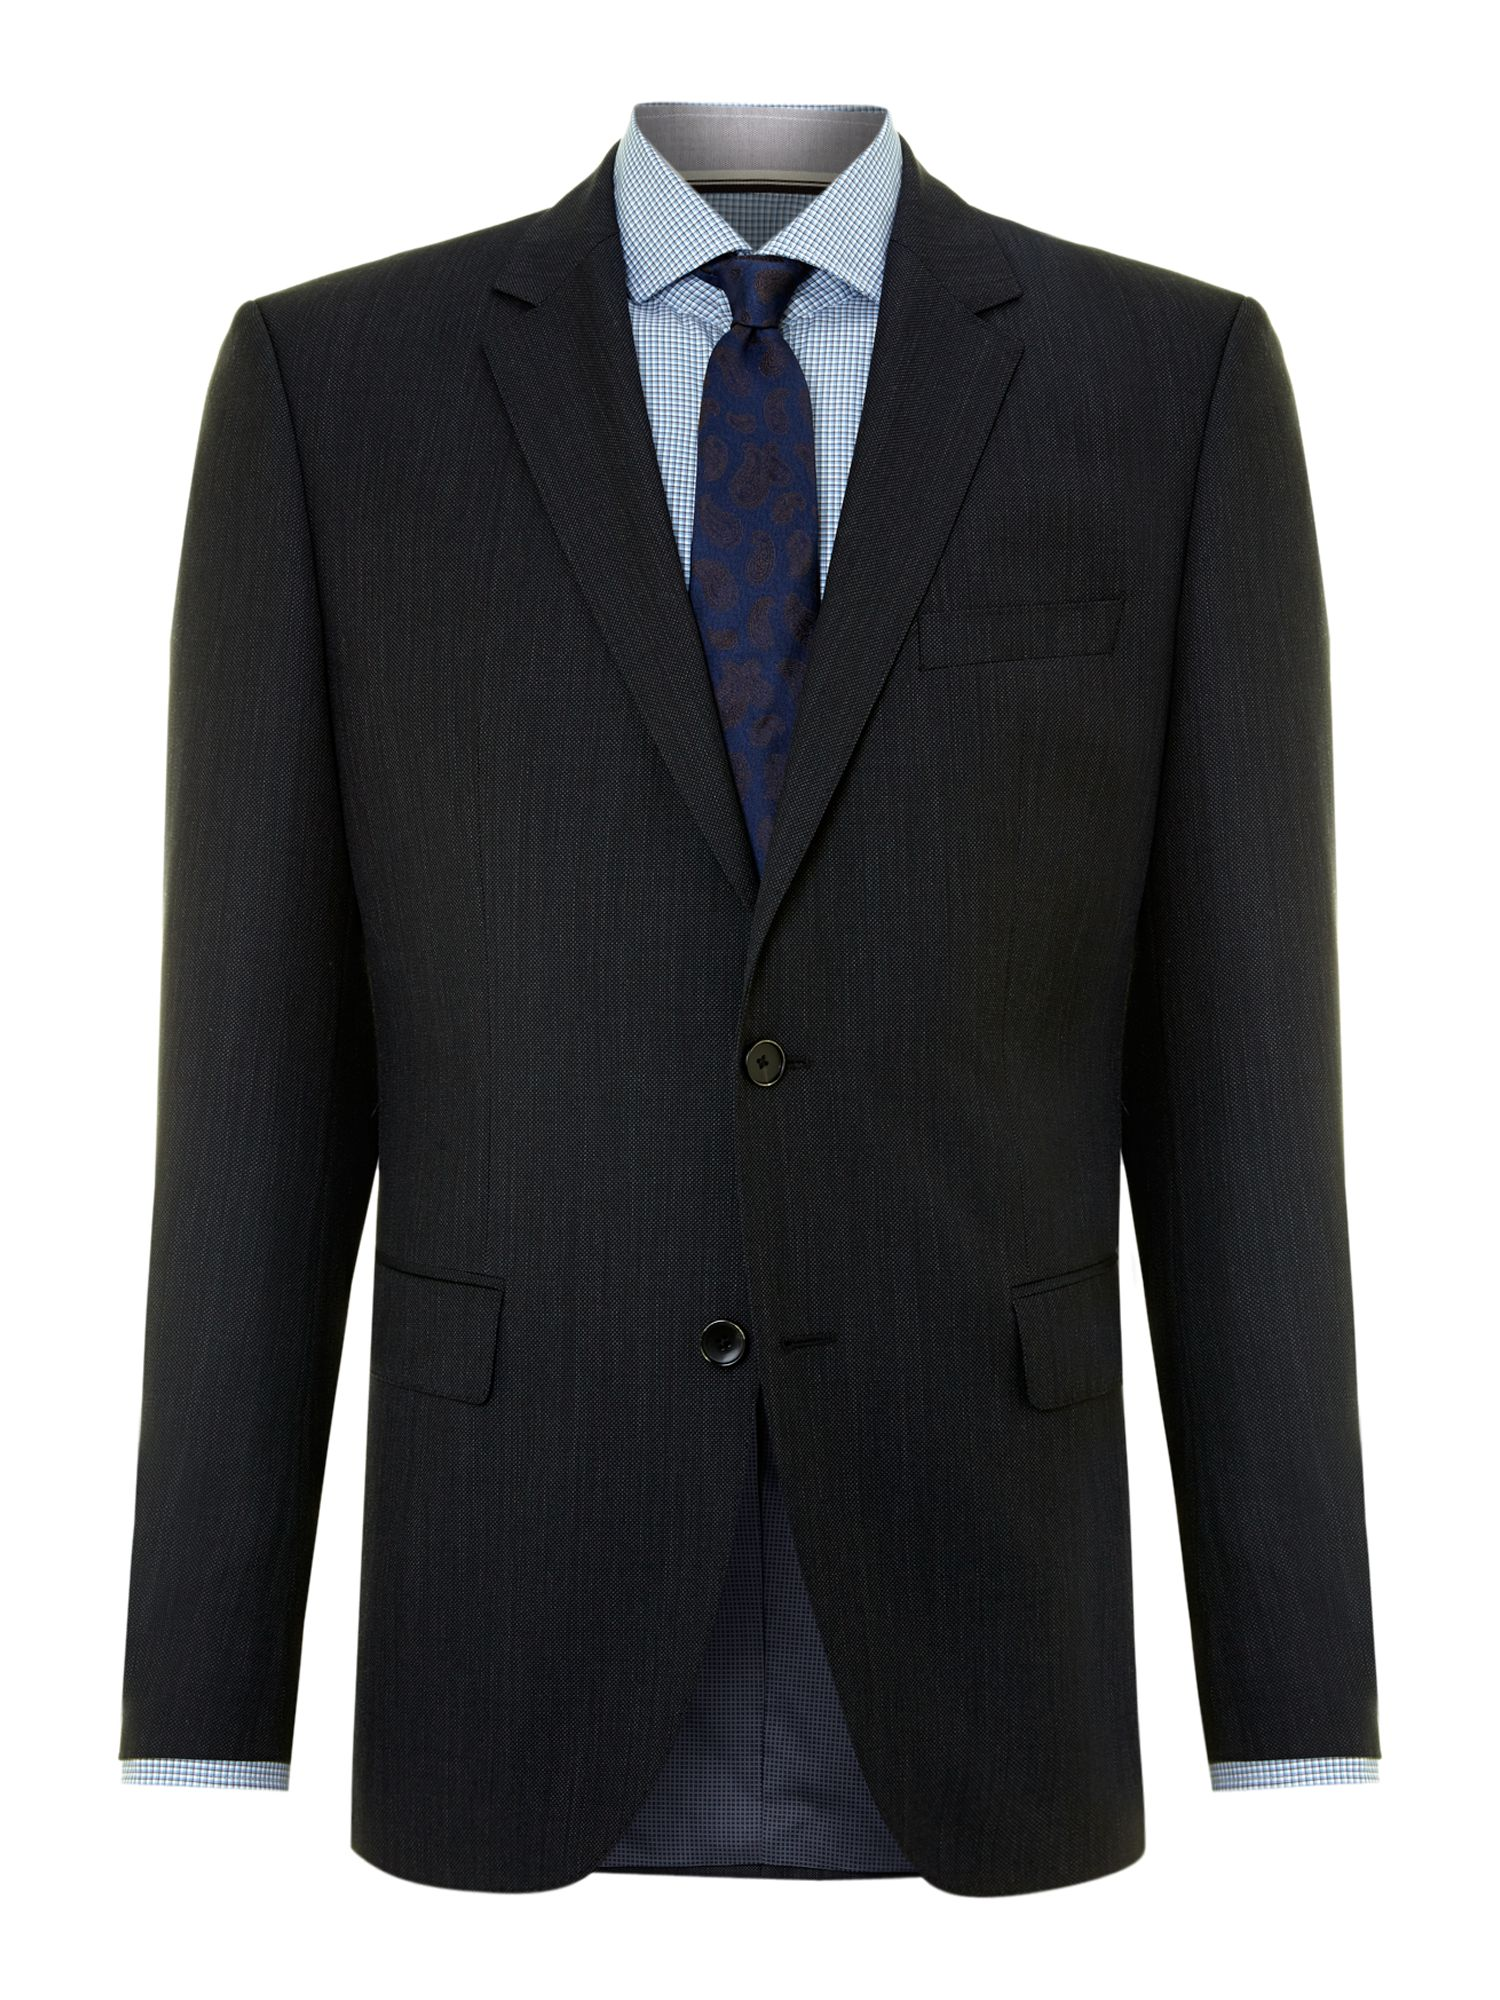 The Keys Shaft birdseye regular fit suit